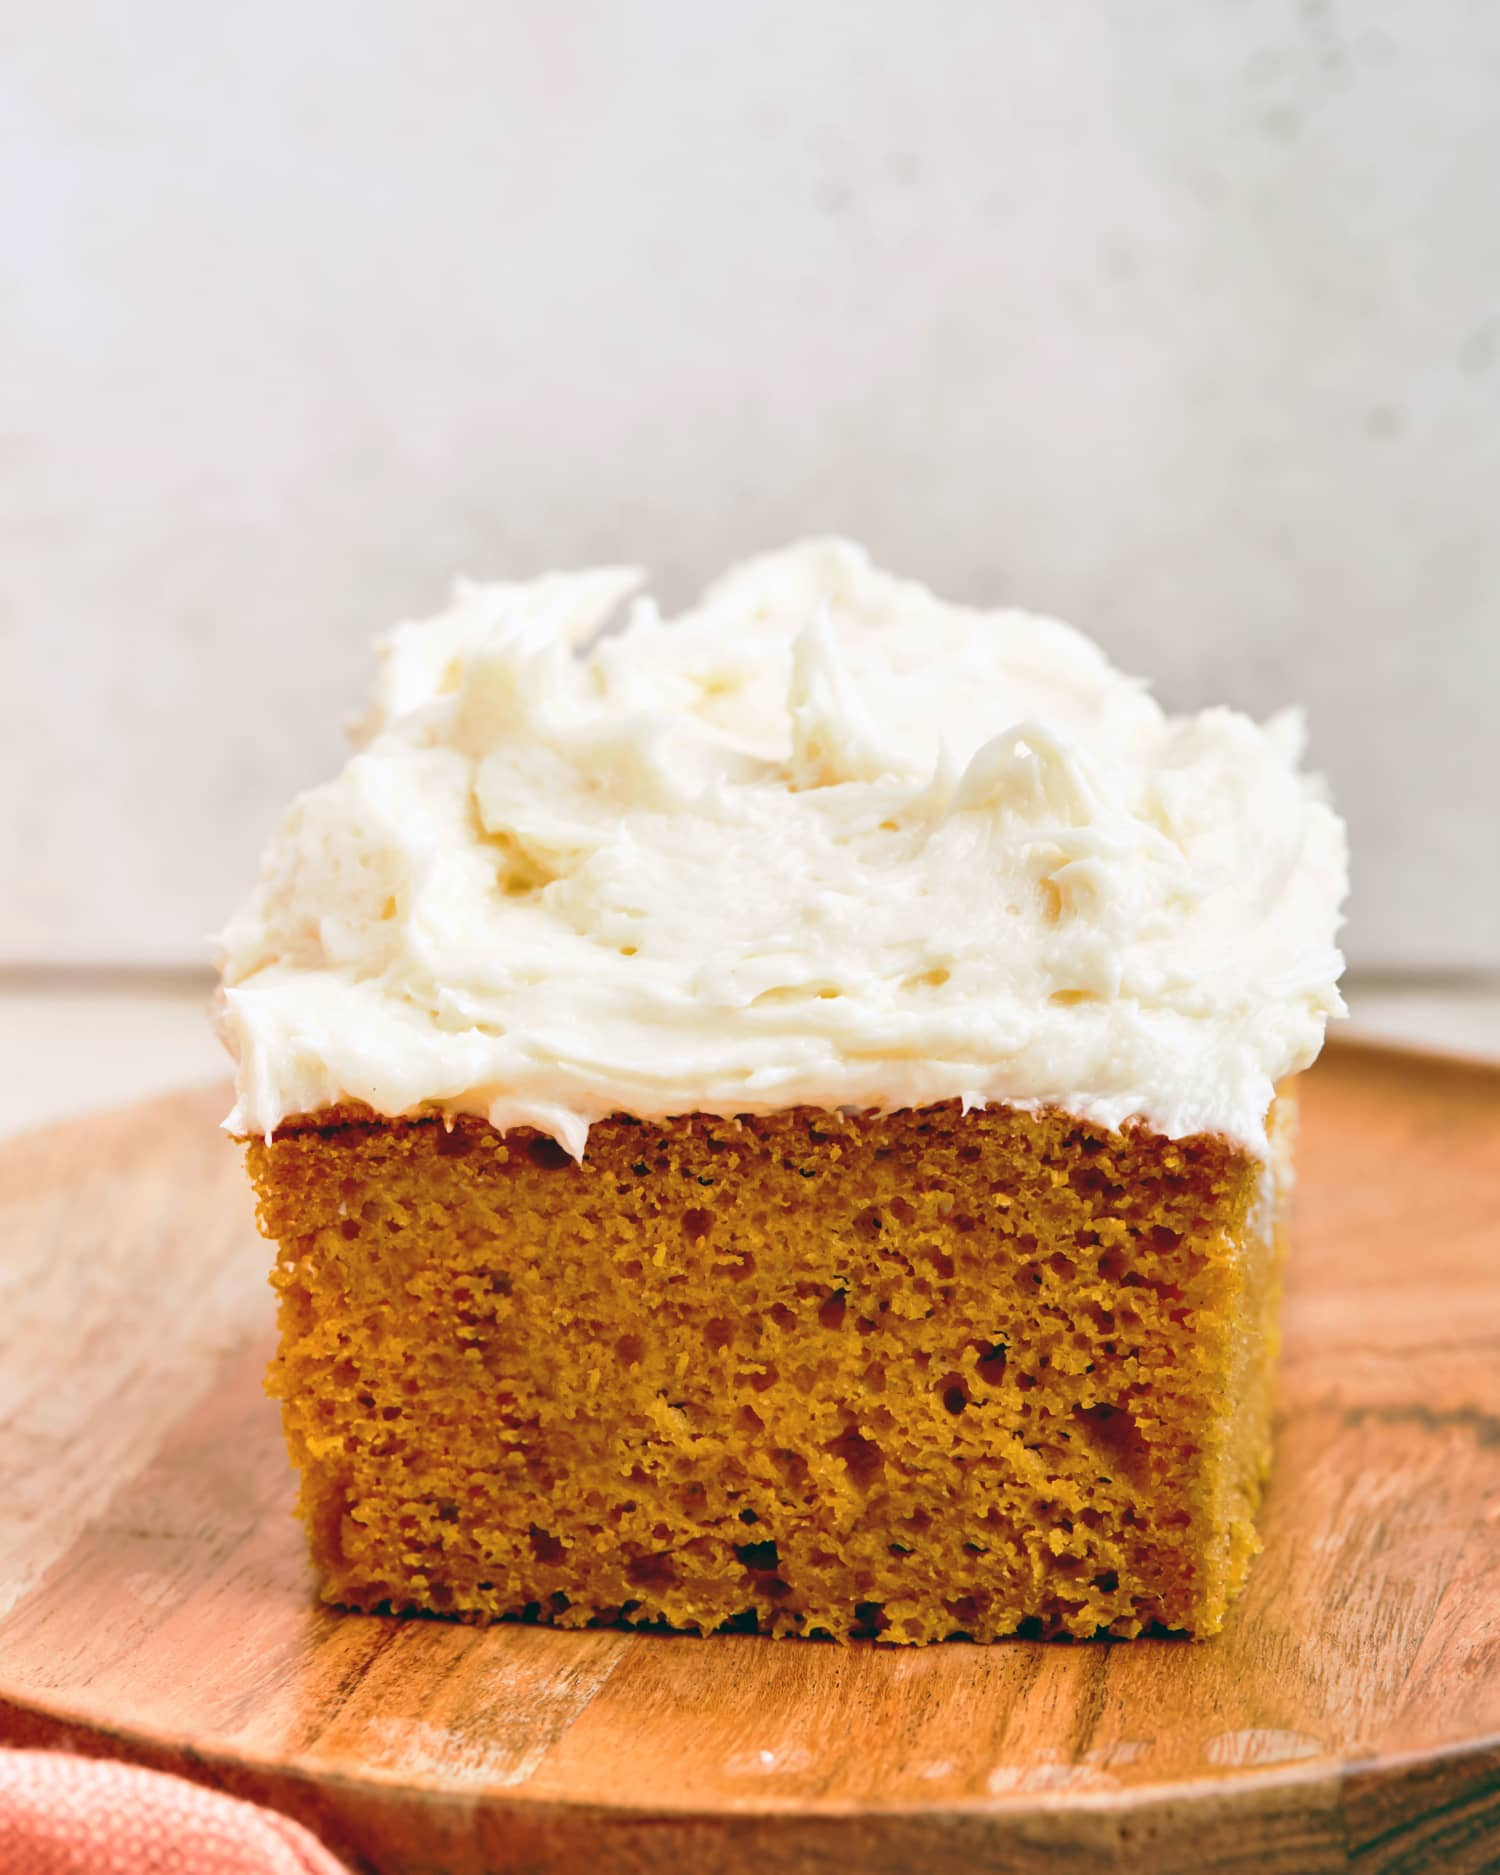 Get Your Fall Baking Started Early with Pumpkin Cake with Cream Cheese Frosting